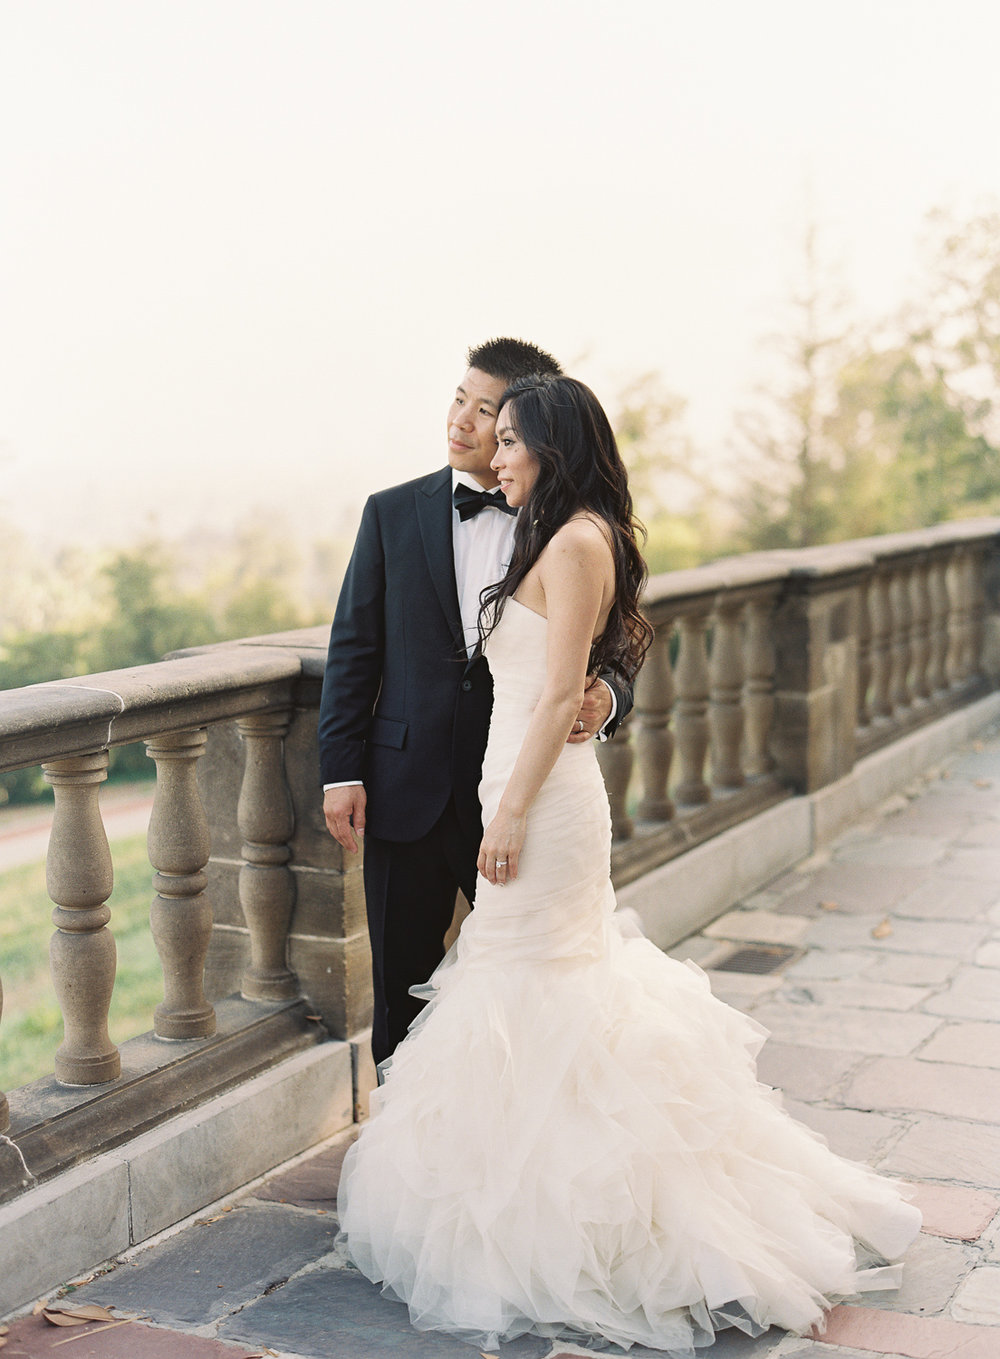 caroline-tran-greystone-mansion-wedding-3.jpg